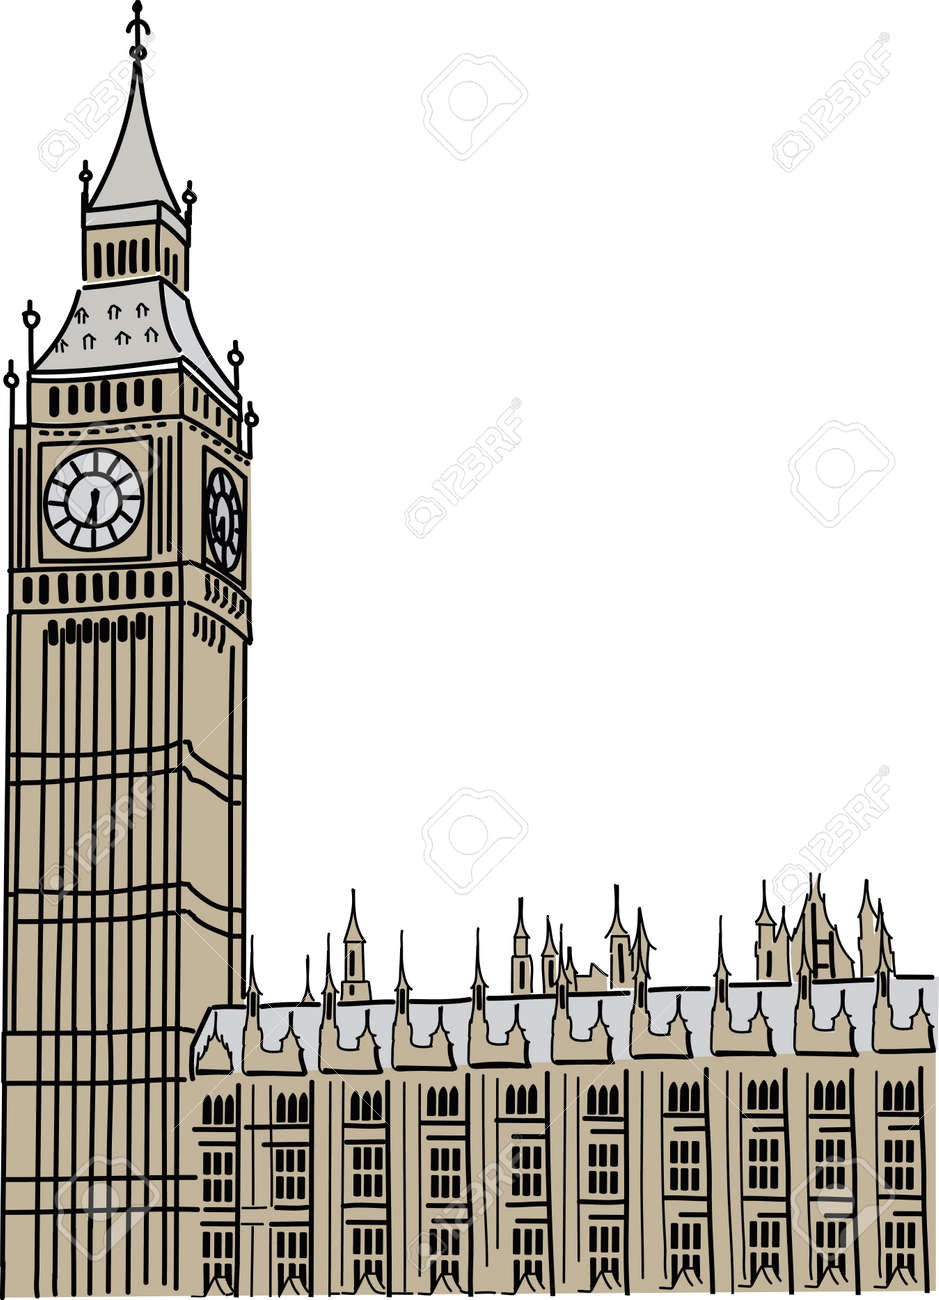 big ben in london royalty free cliparts vectors and stock rh 123rf com big ben clipart images big ben clock clipart